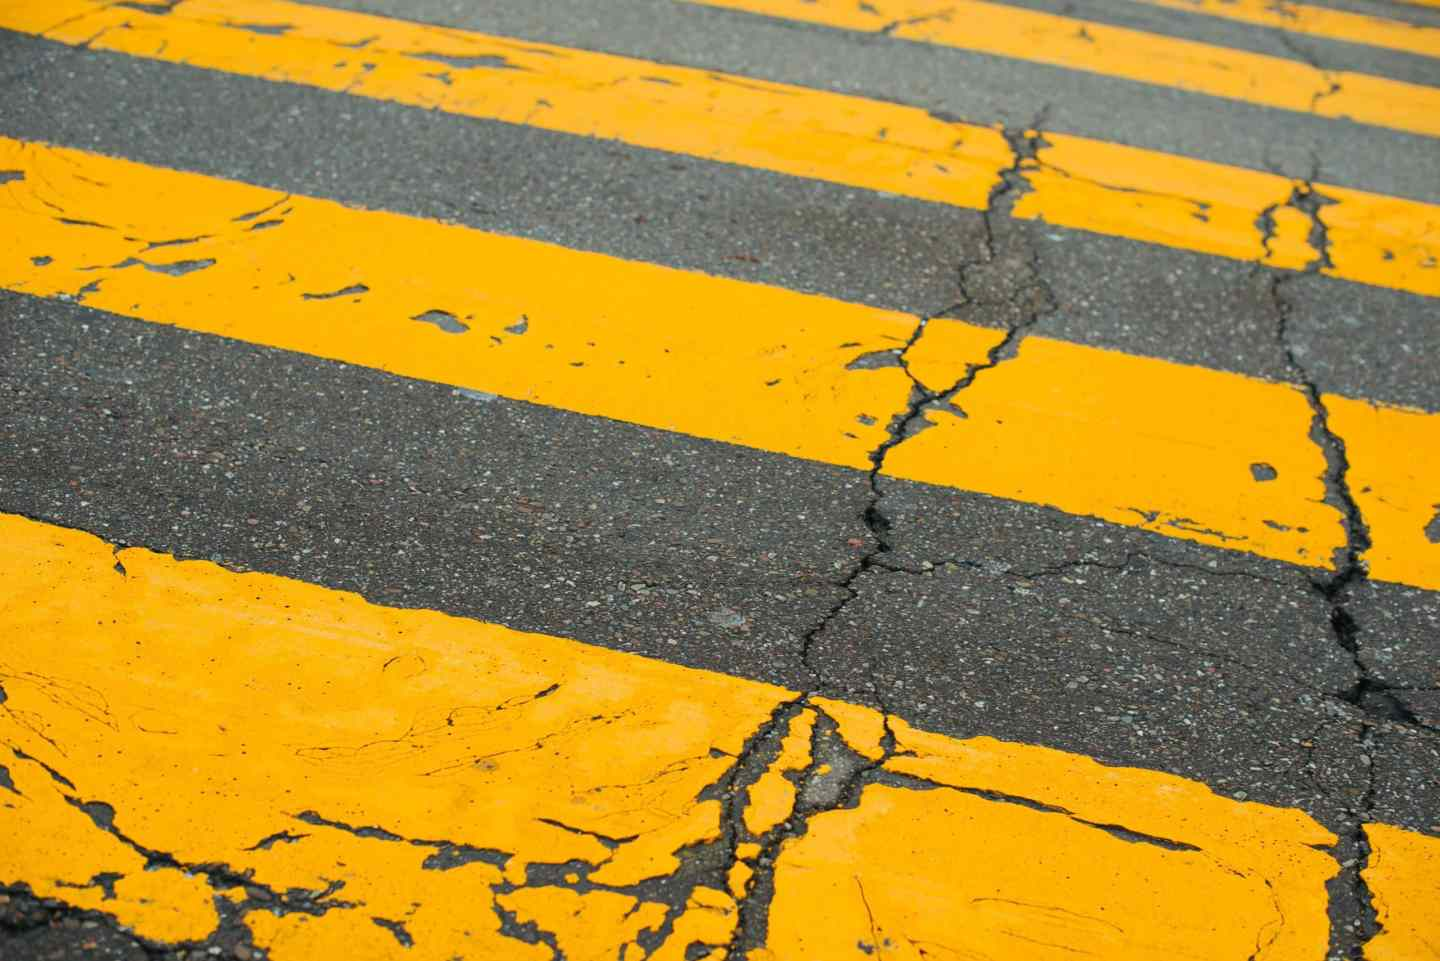 A road crossing in yellow across a grey cement road symbolising the colours of the year 2021 Ultimate gray and illuminating